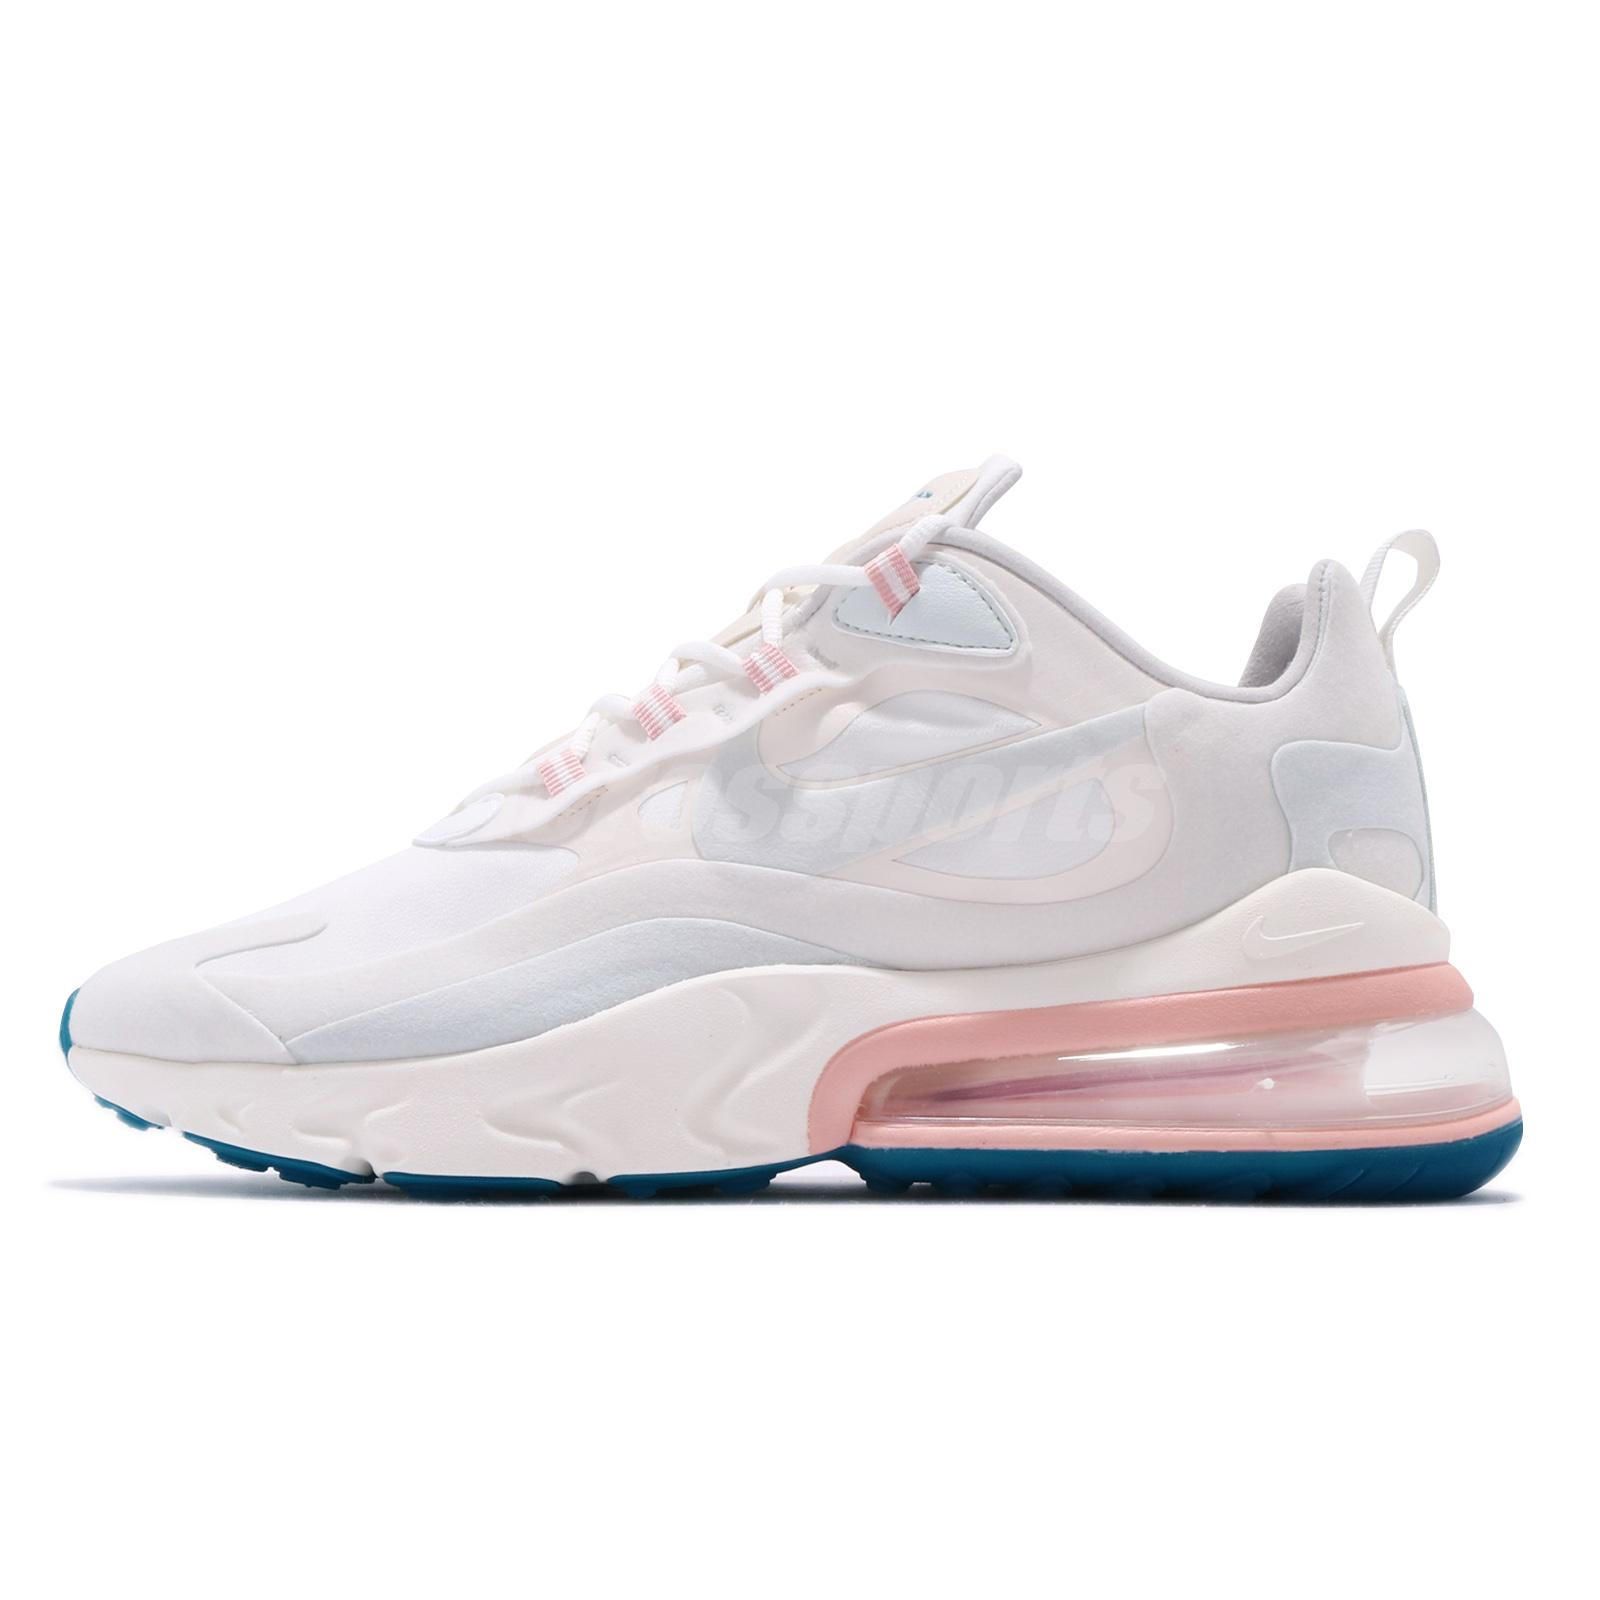 Details about Nike Air Max 270 React Summit White Blue Pink Mens Running  Shoes AO4971-100